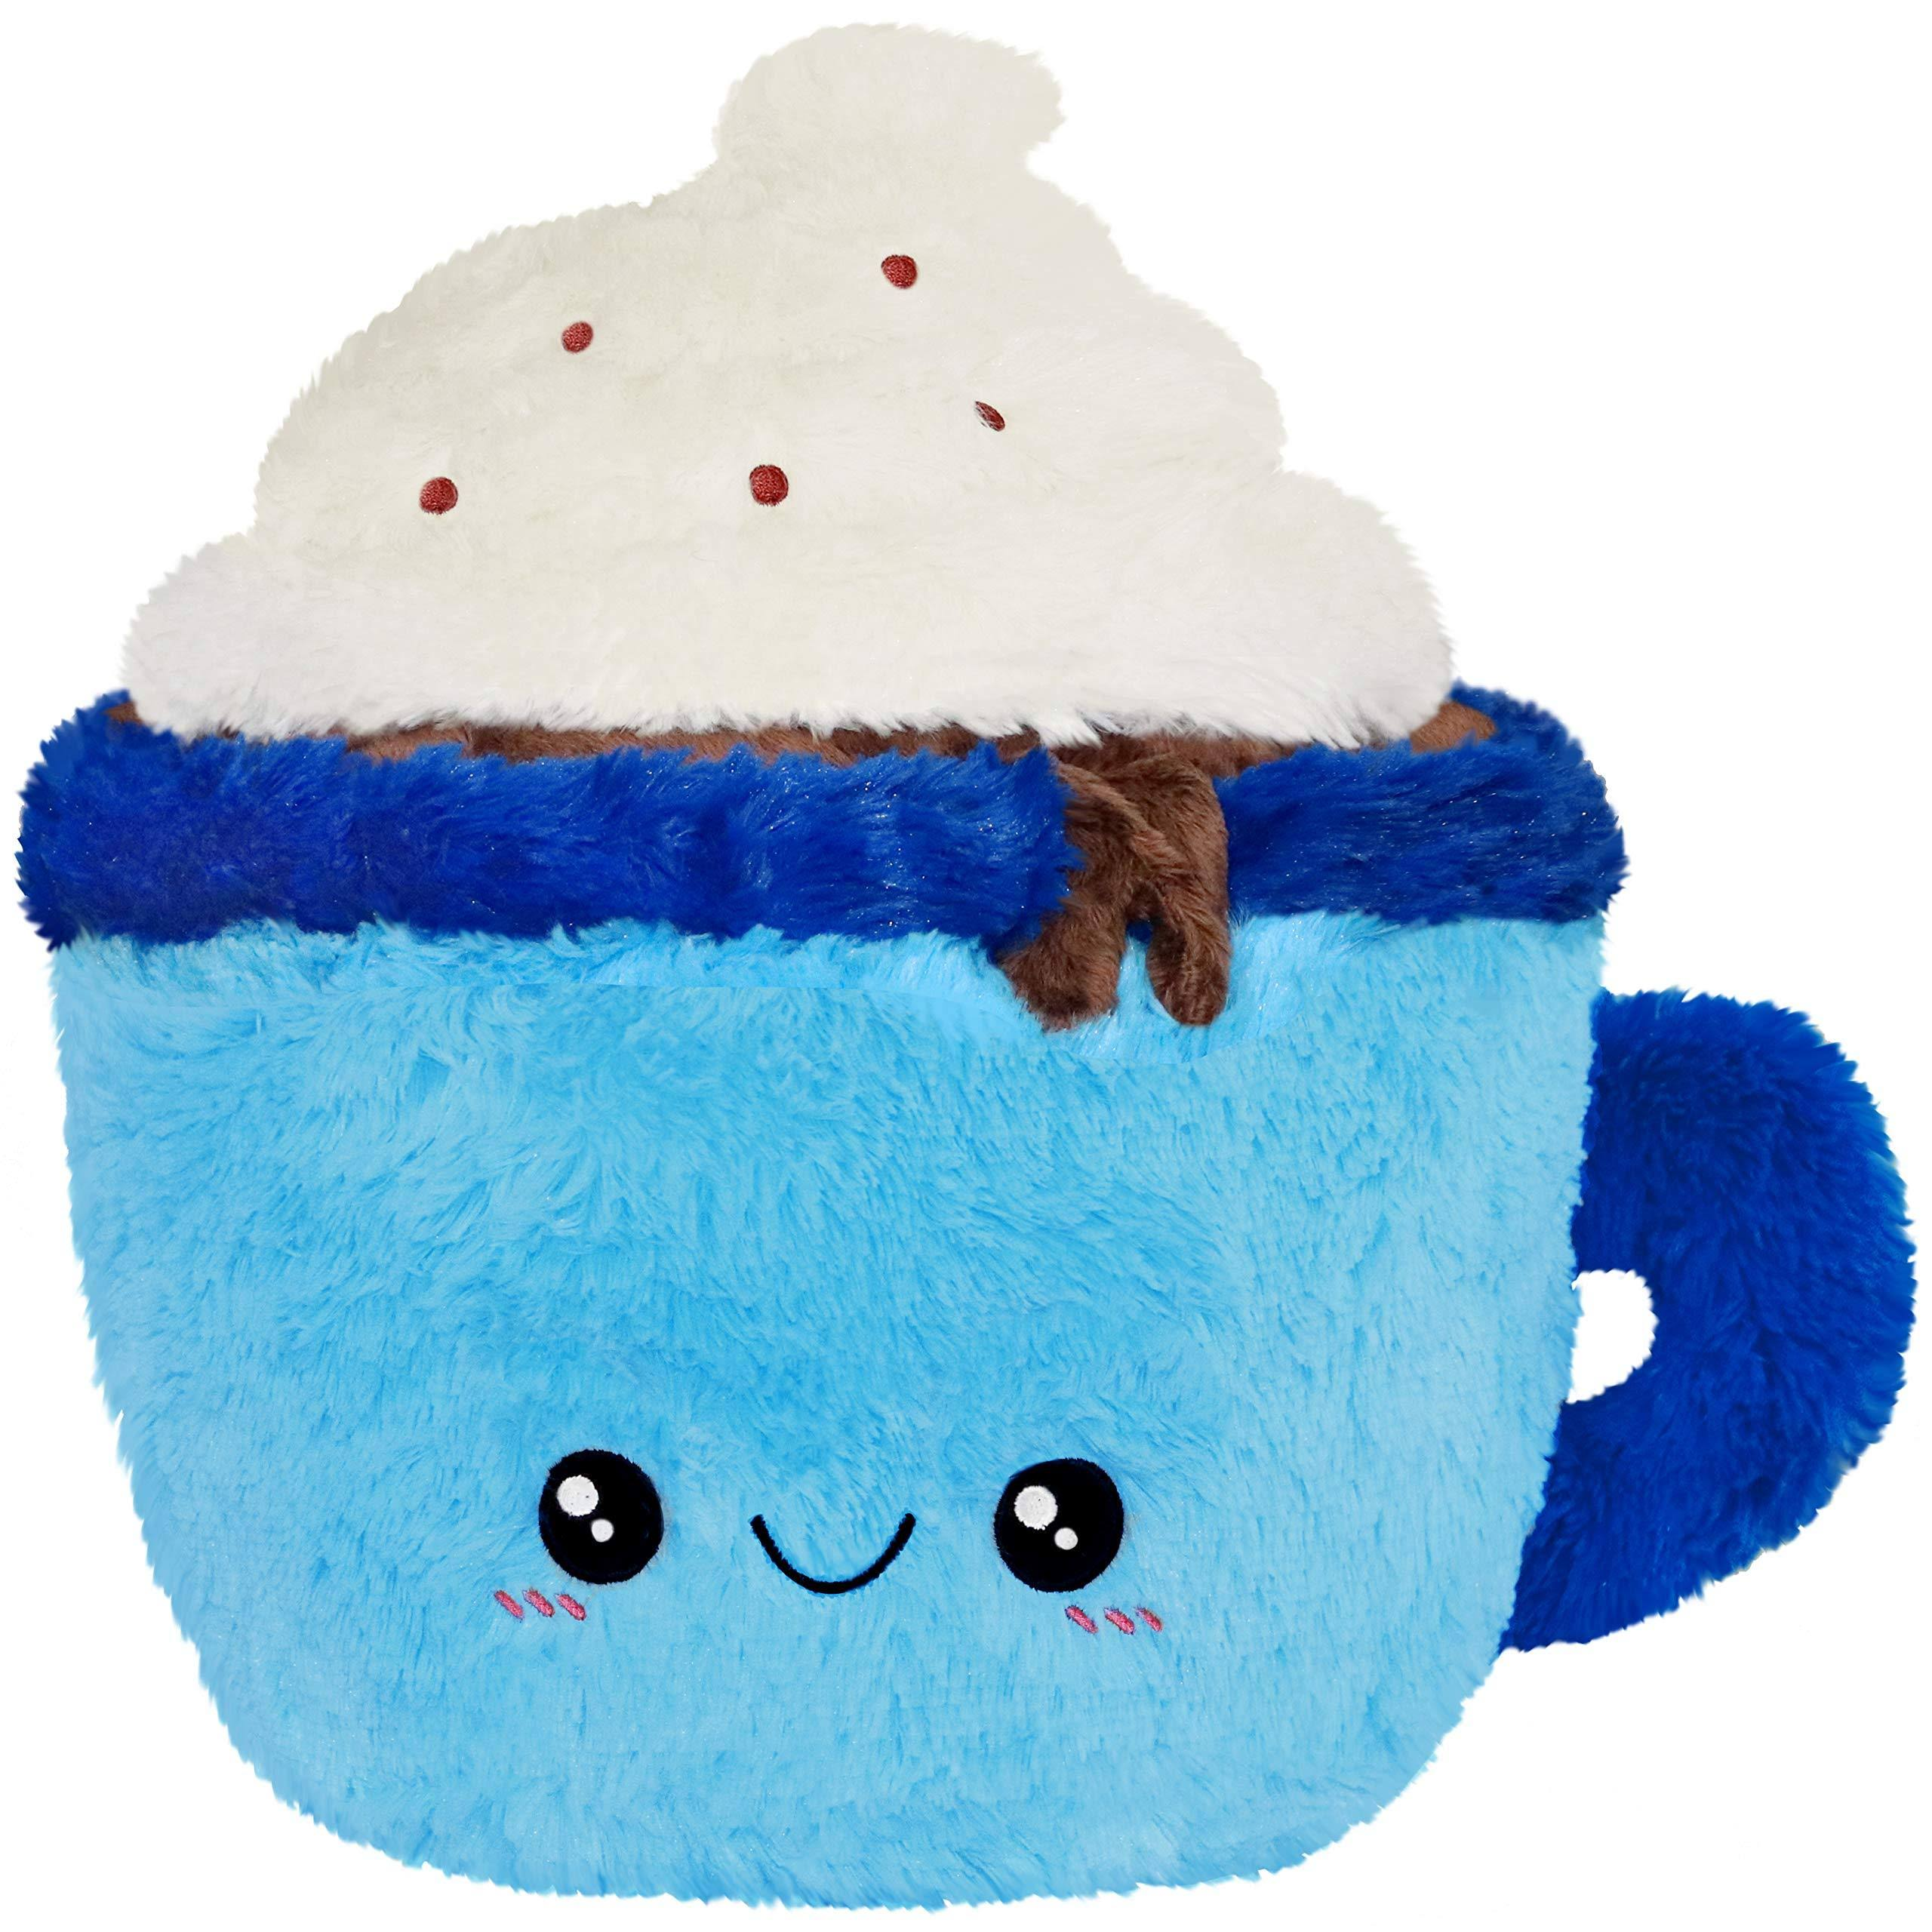 Squishable Comfort Food Hot Chocolate